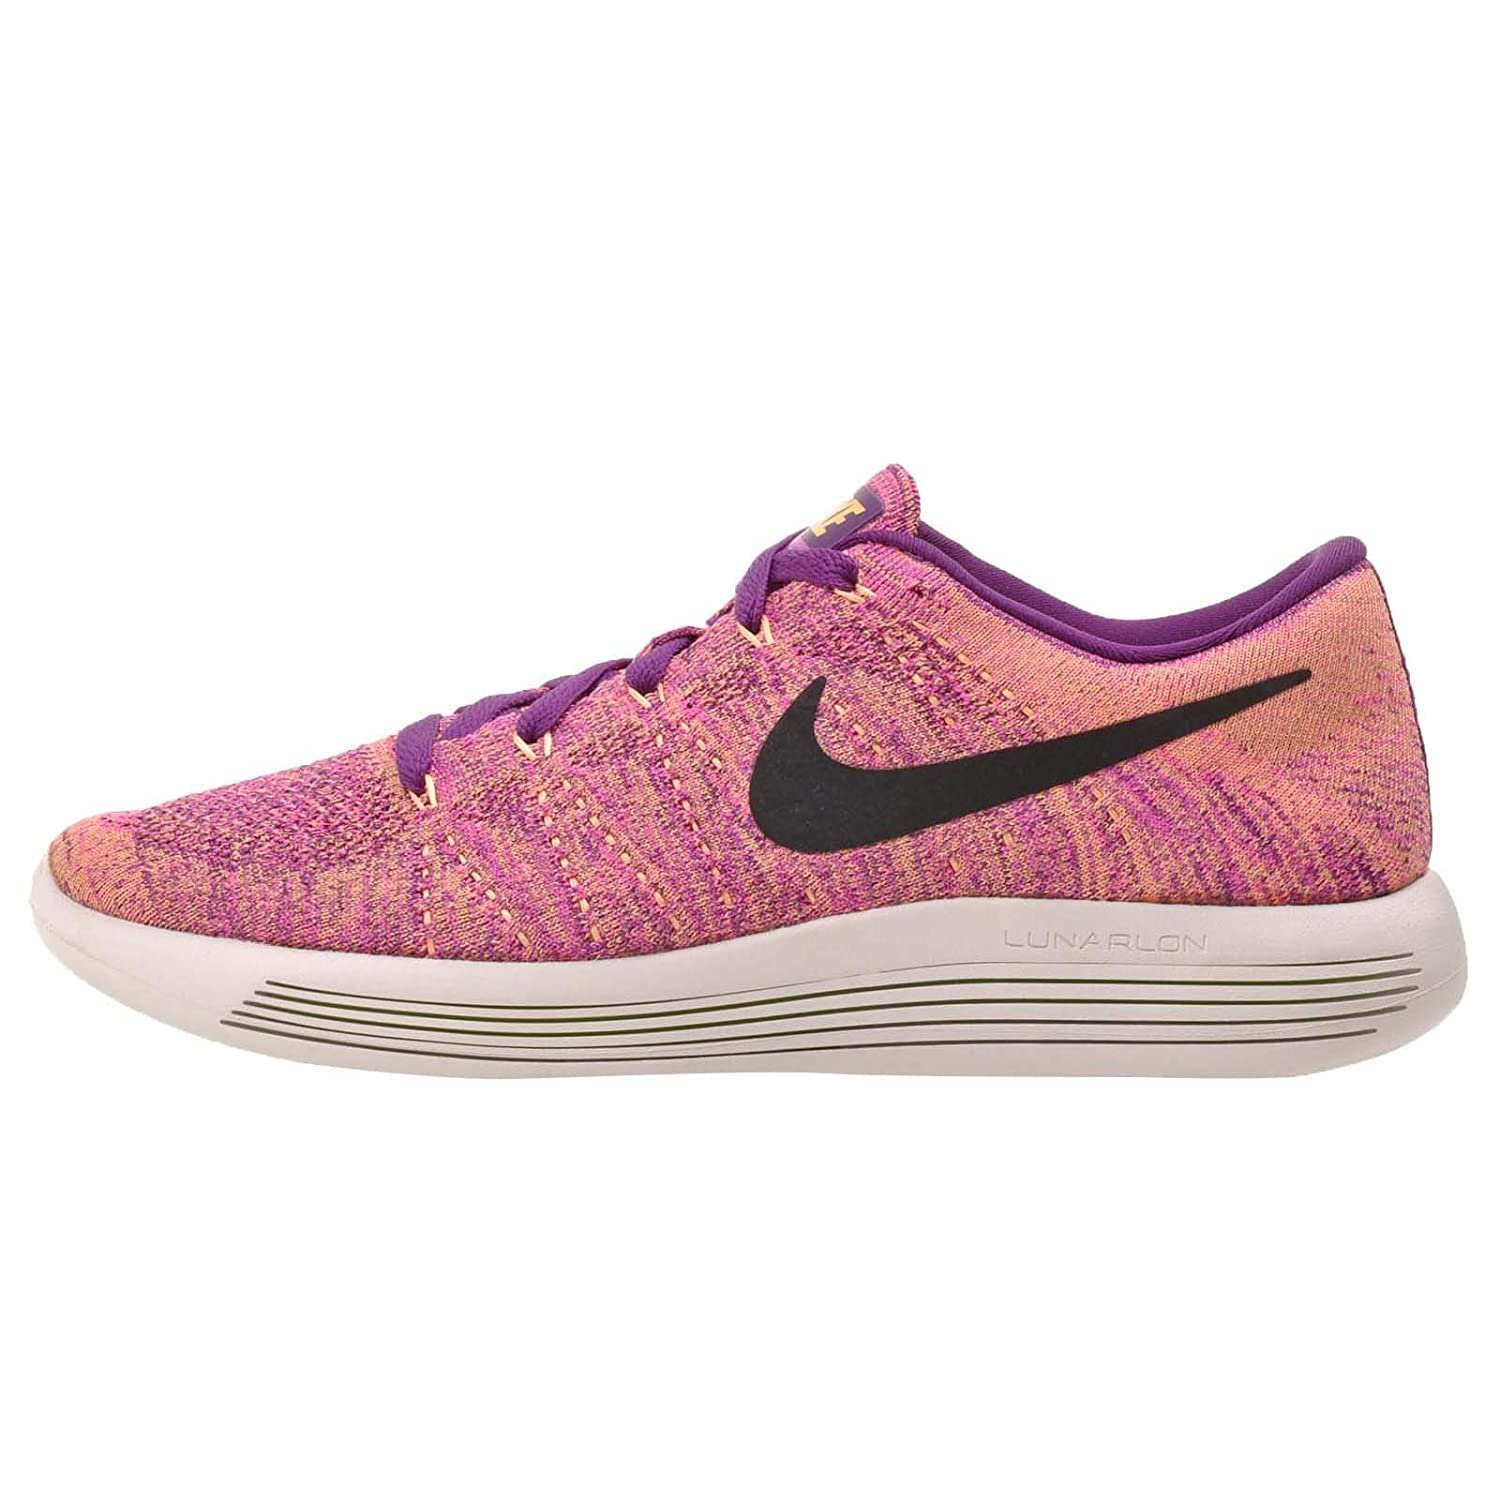 Nike Womens Lunarepic Low Flyknit Running Trainers 843765 Sneakers Shoes US 8.5, Bright Grape 500